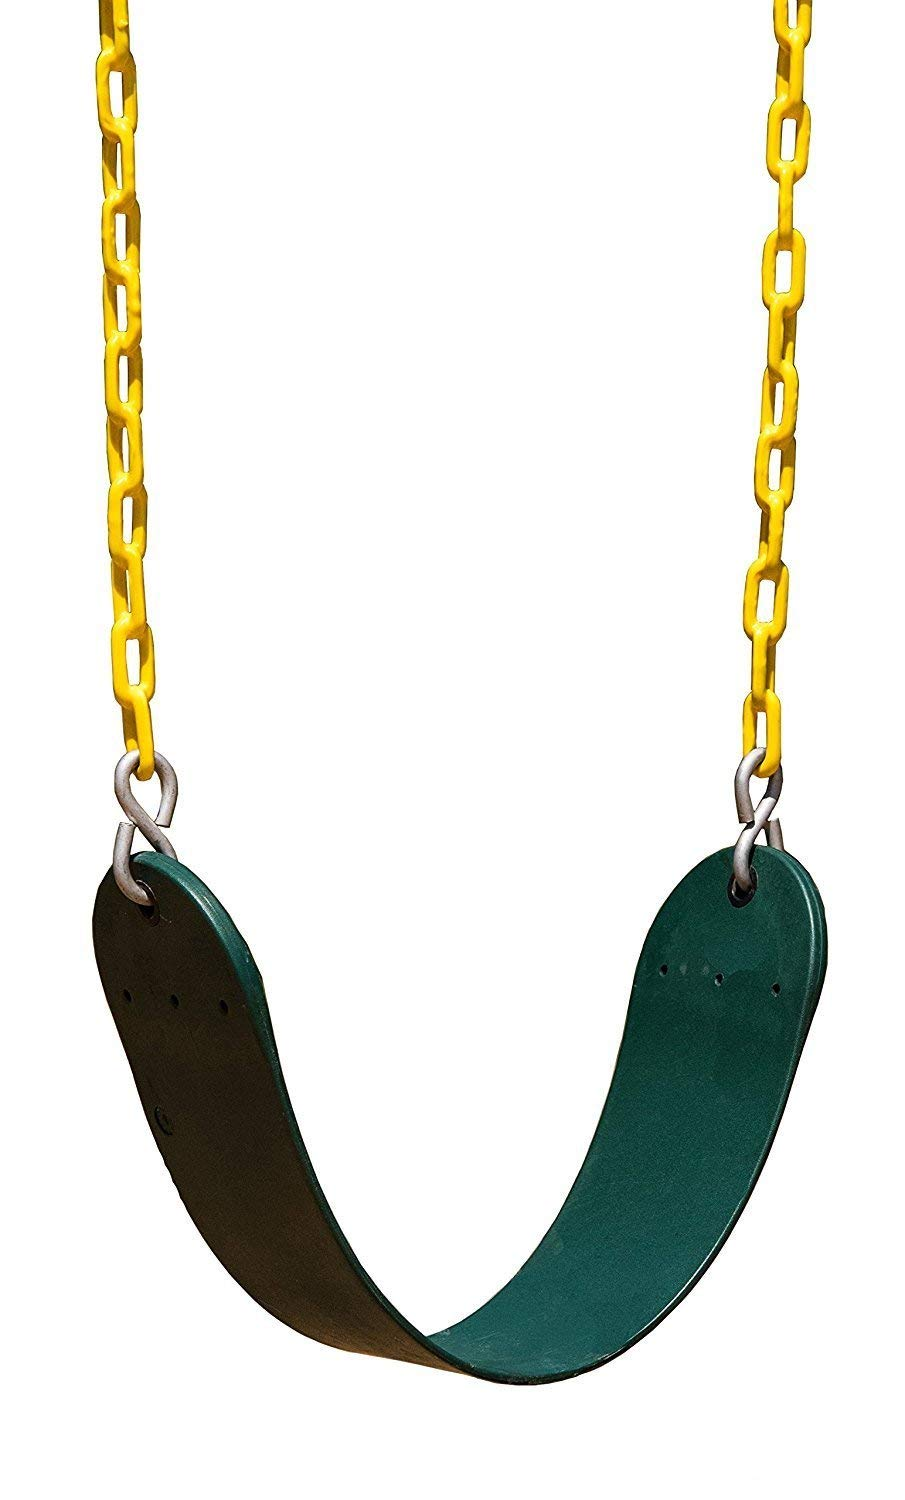 High Back Full Bucket Swing and Heavy Duty Swing Seat - Swing Set Accessories by Squirrel Products (Image #2)